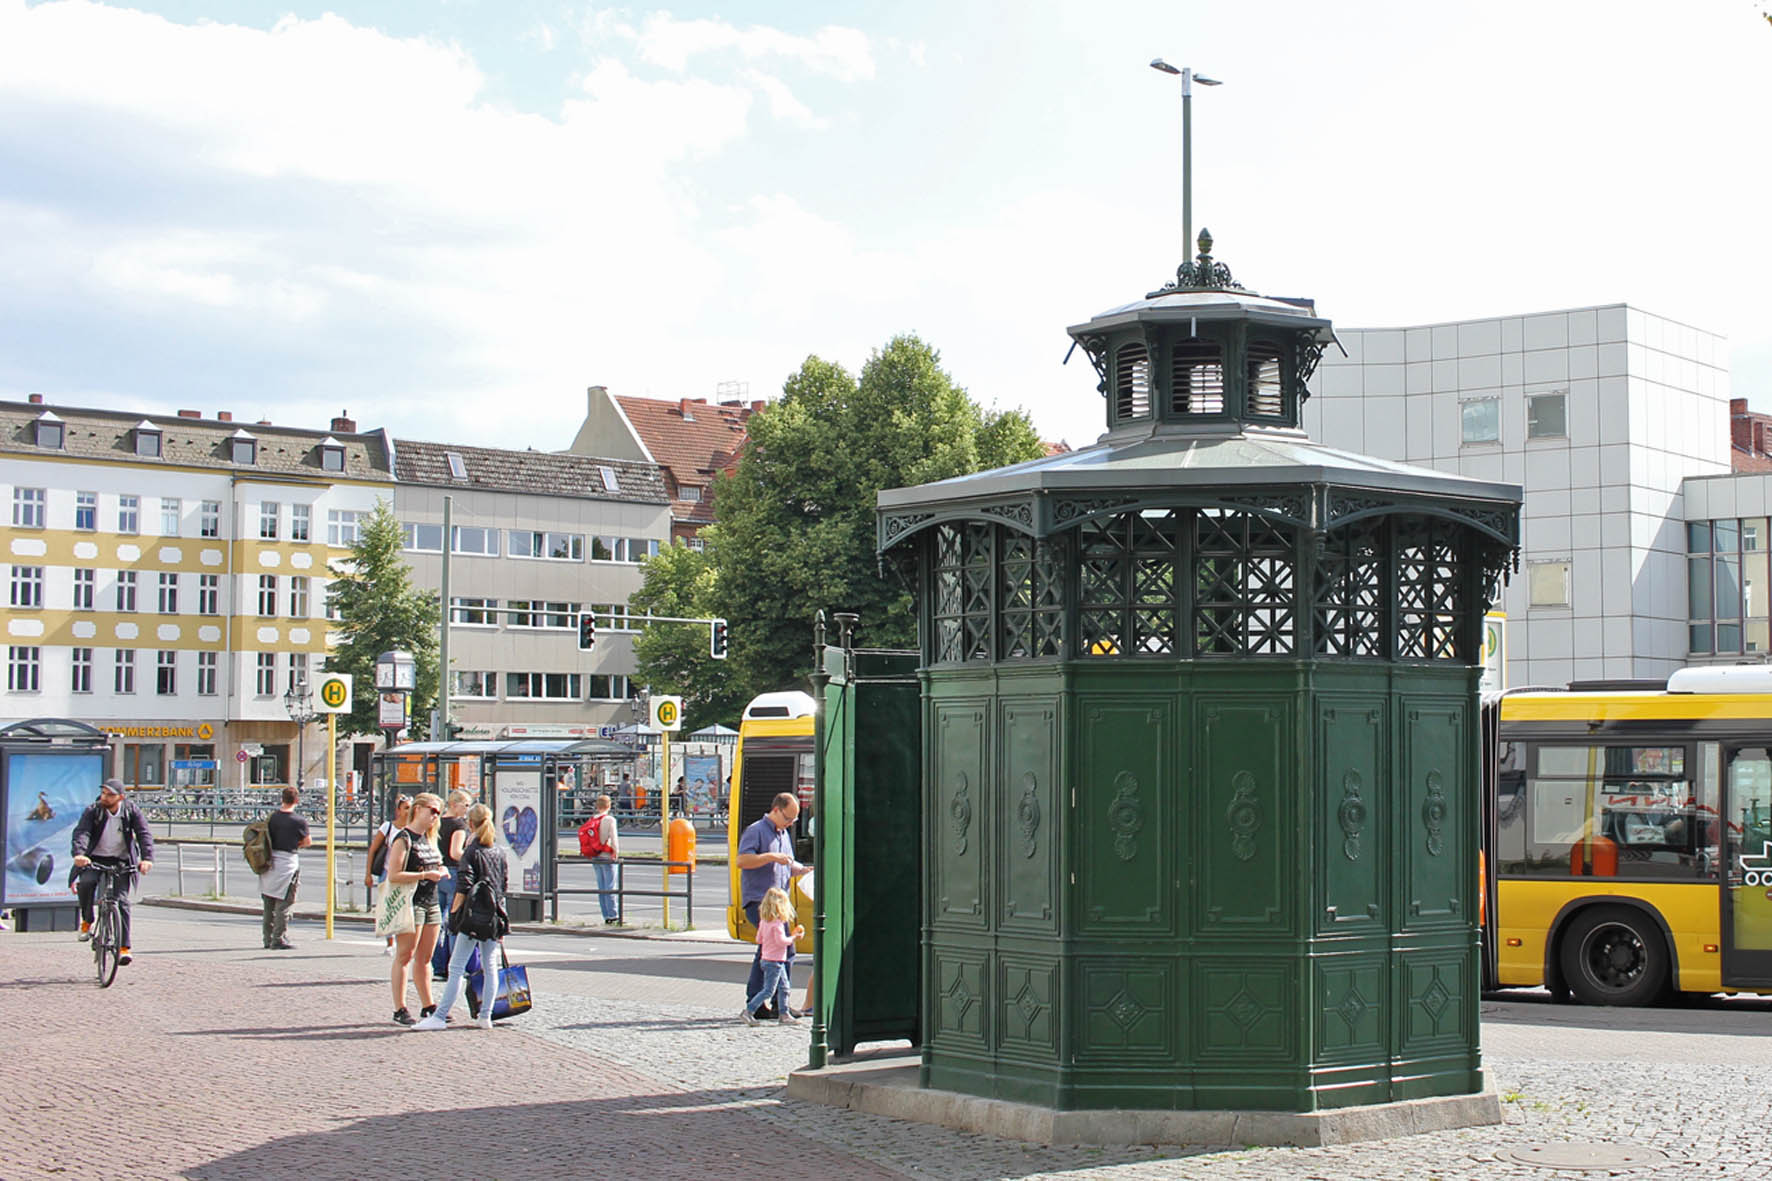 Café Achteck - Alt-Tegel - an example of Berlin's classic 19th century green cast iron public toilets